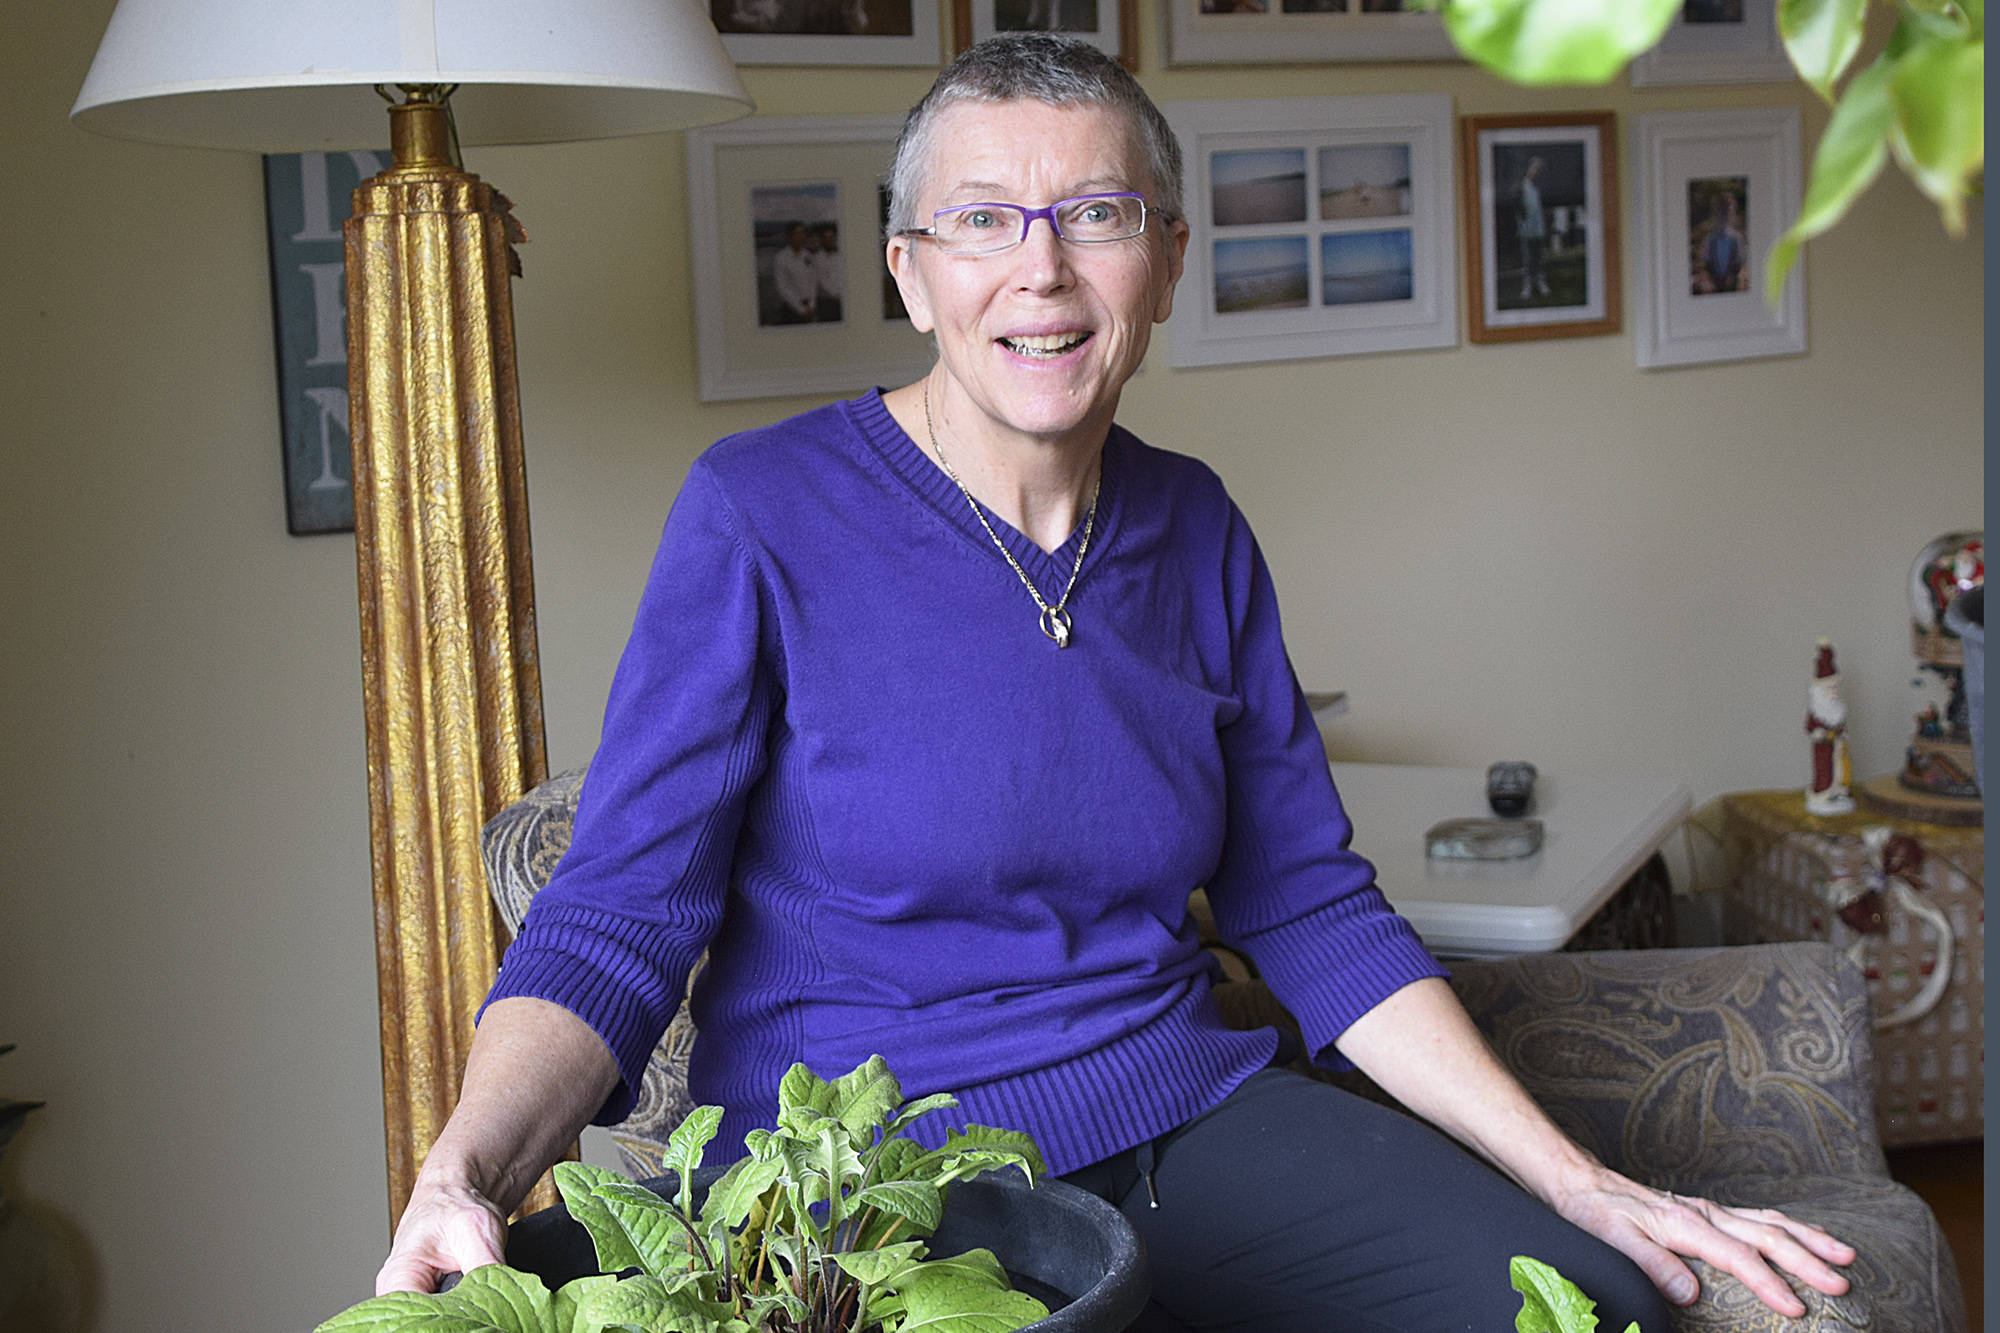 Maureen Kennah-Hafstein is overjoyed at being able to reduce her medication for Parkinson's Disease after undergoing long-awaited Deep Brain Stimulation surgery. (Martha Wickett/Salmon Arm Observer)